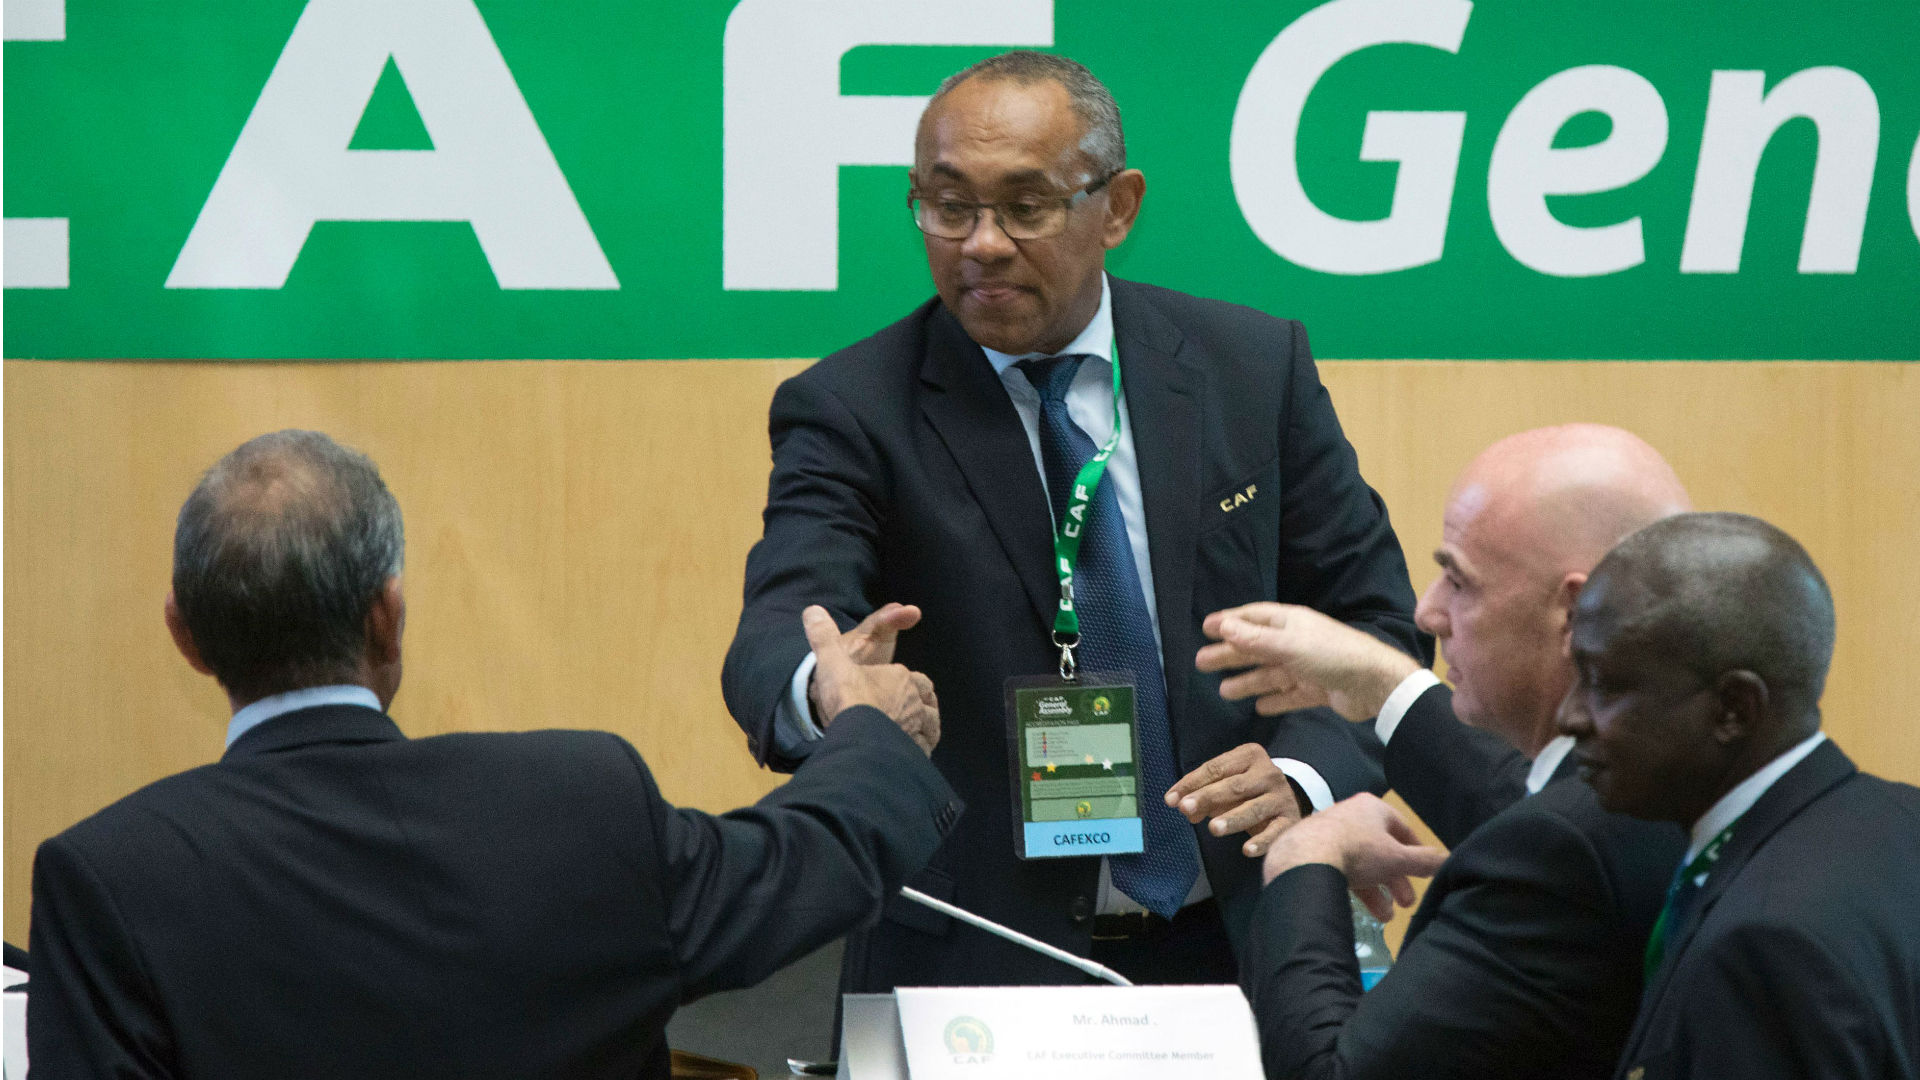 Cameroon stripped of rights to host 2019 Africa Cup of Nations